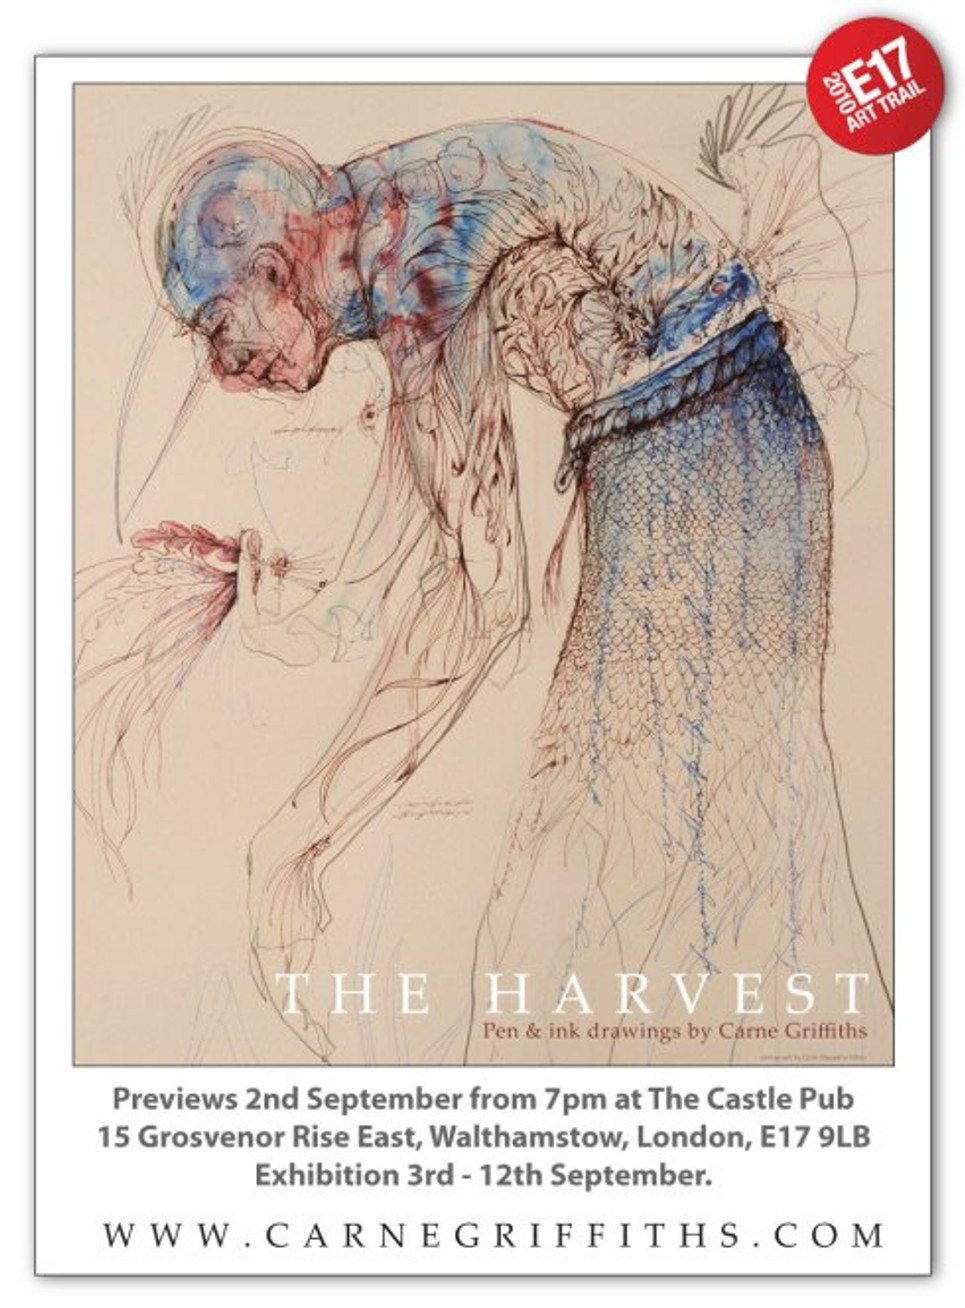 The Harvest by Carne Griffiths - E17 Arts Trail